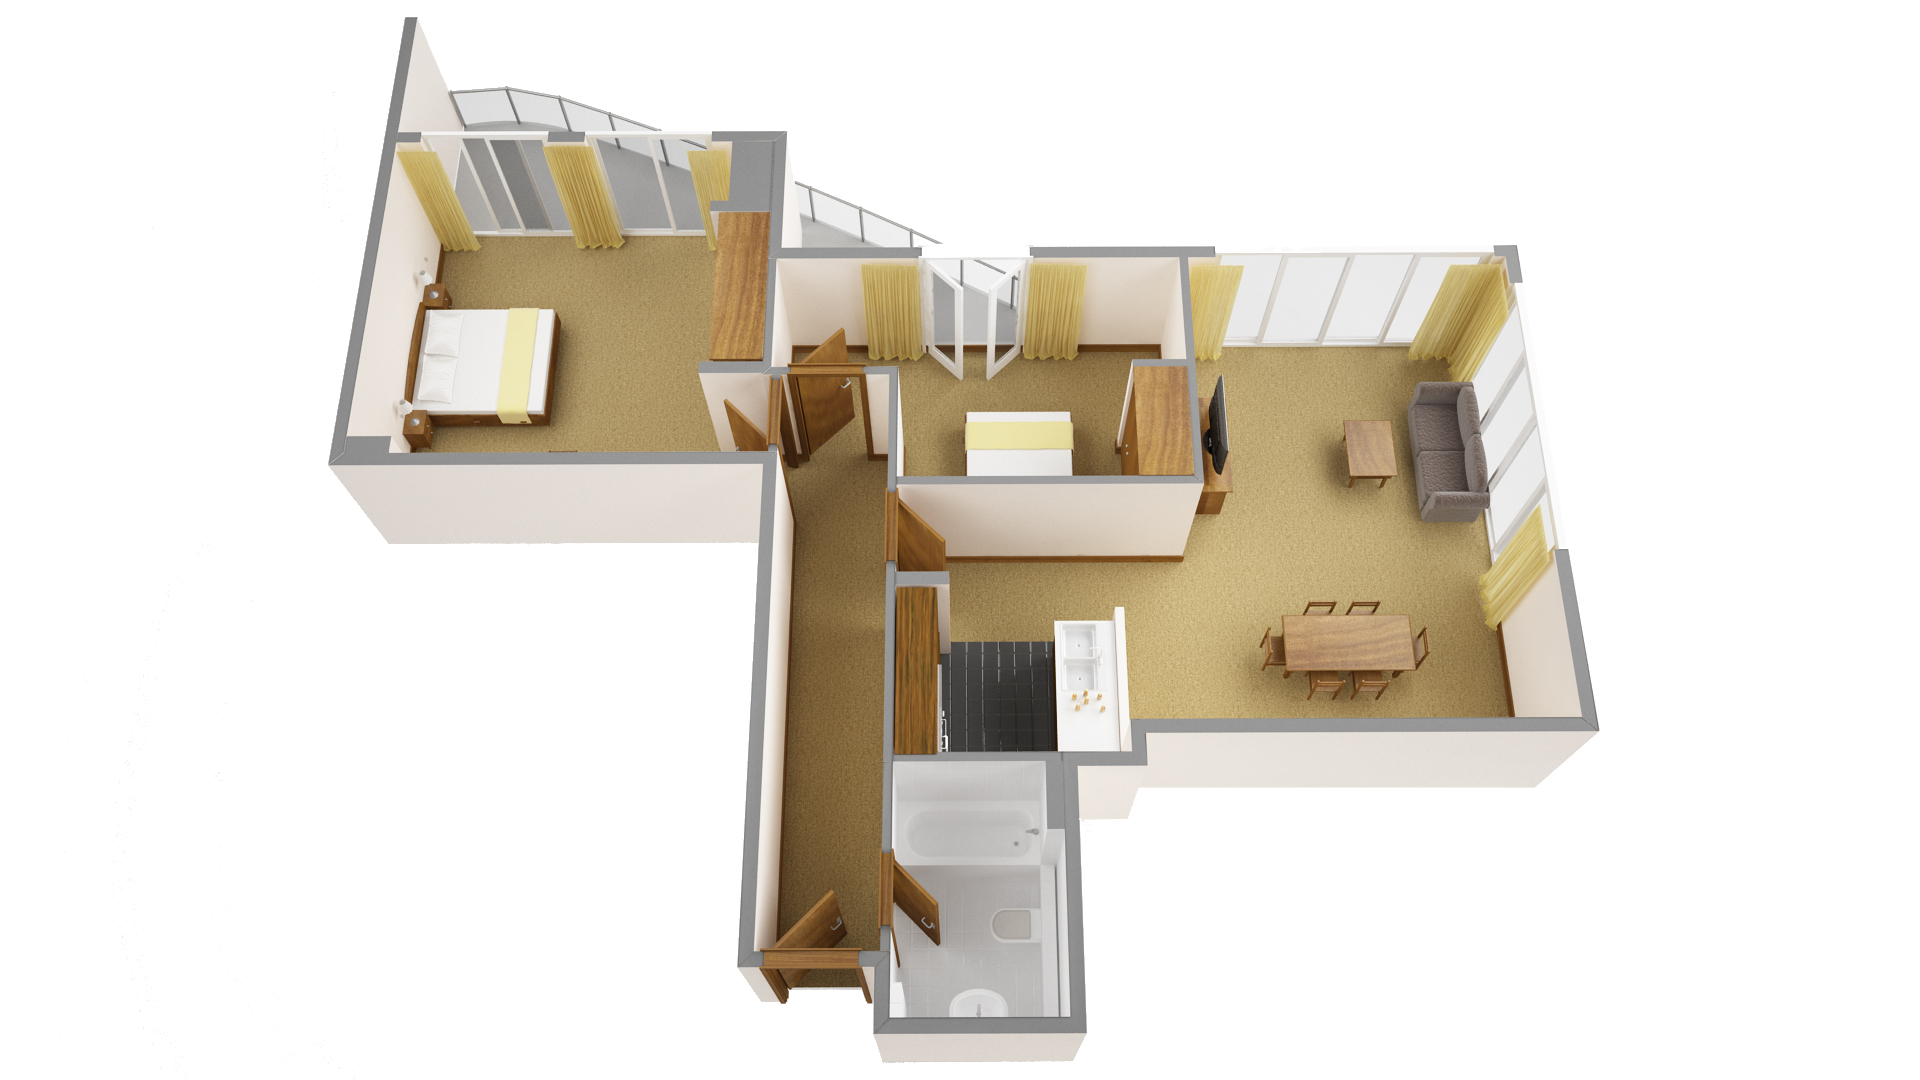 Second floor plan at Sanctum Maida Vale